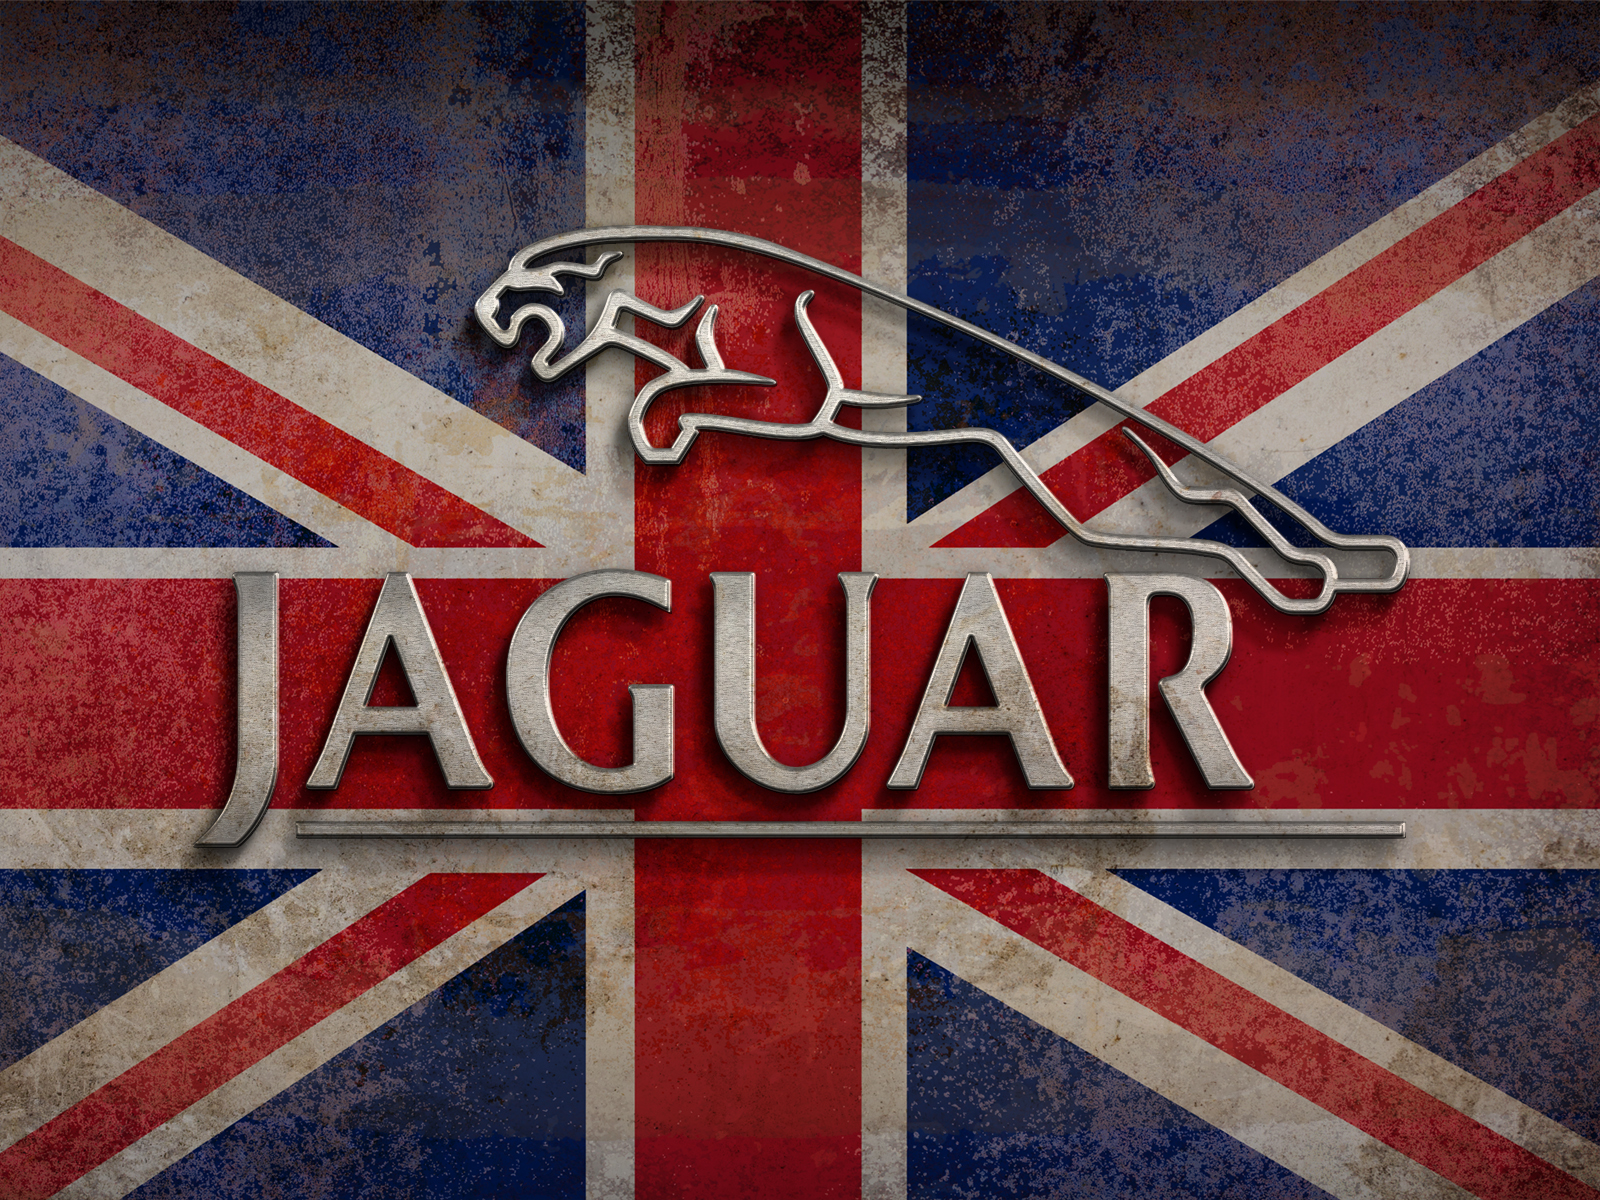 HD wallpapers jaguar wallpapers for pc